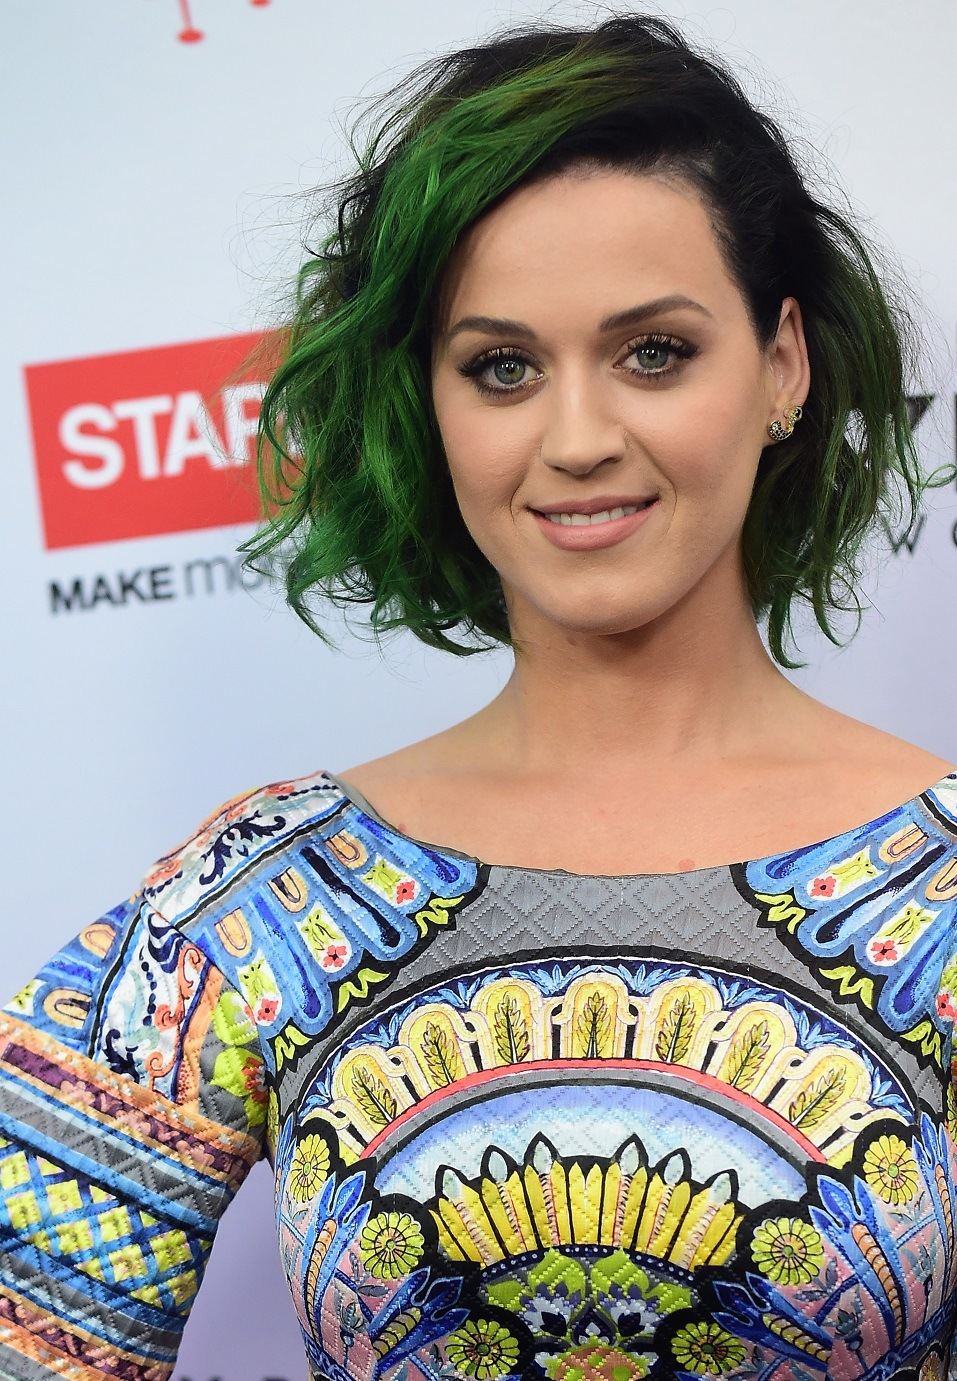 Pop star Katy Perry poses in Los Angeles